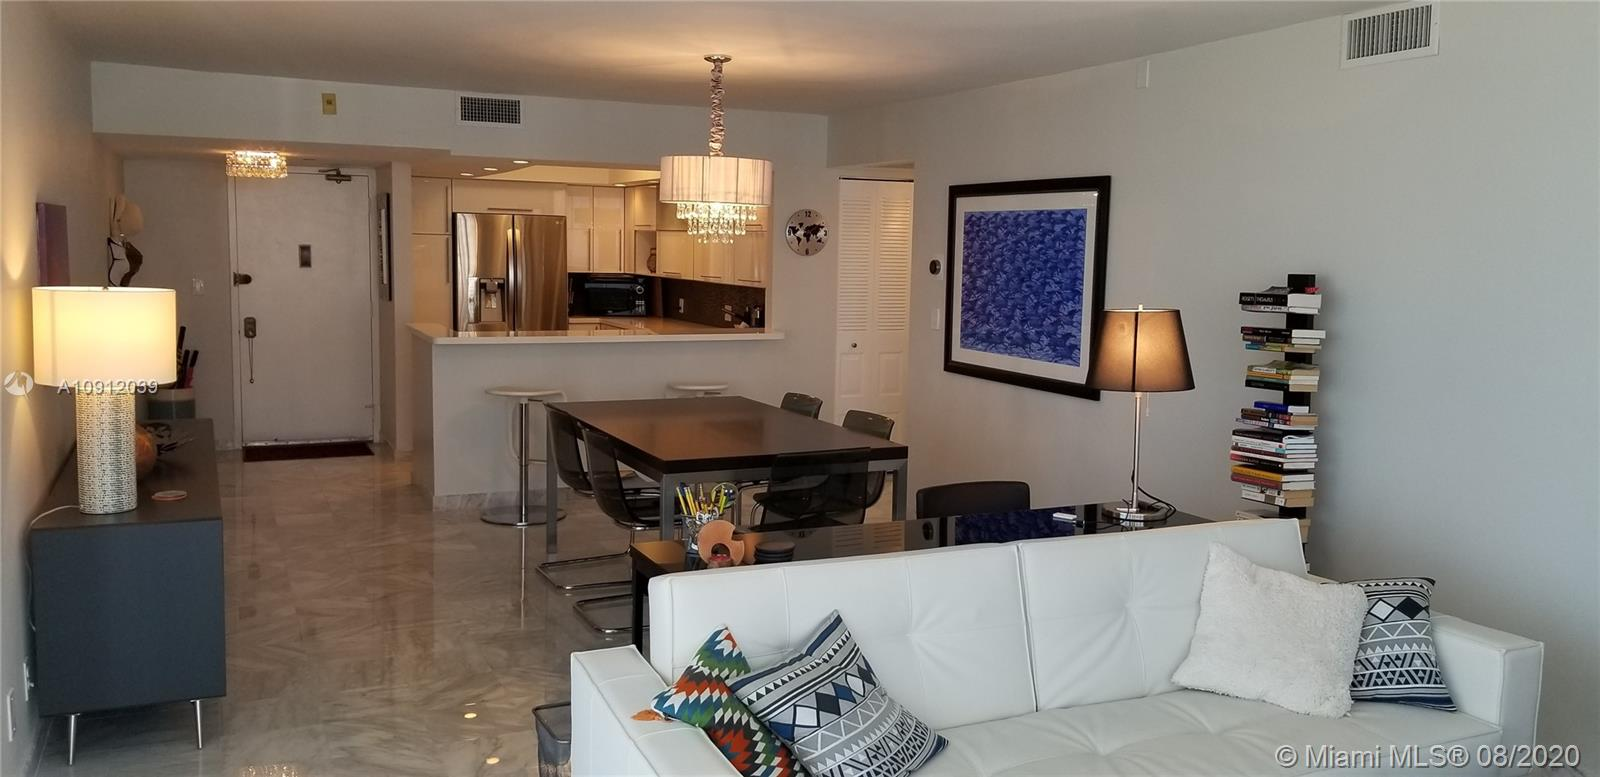 20335 W Country Club Dr #1803 For Sale A10912039, FL